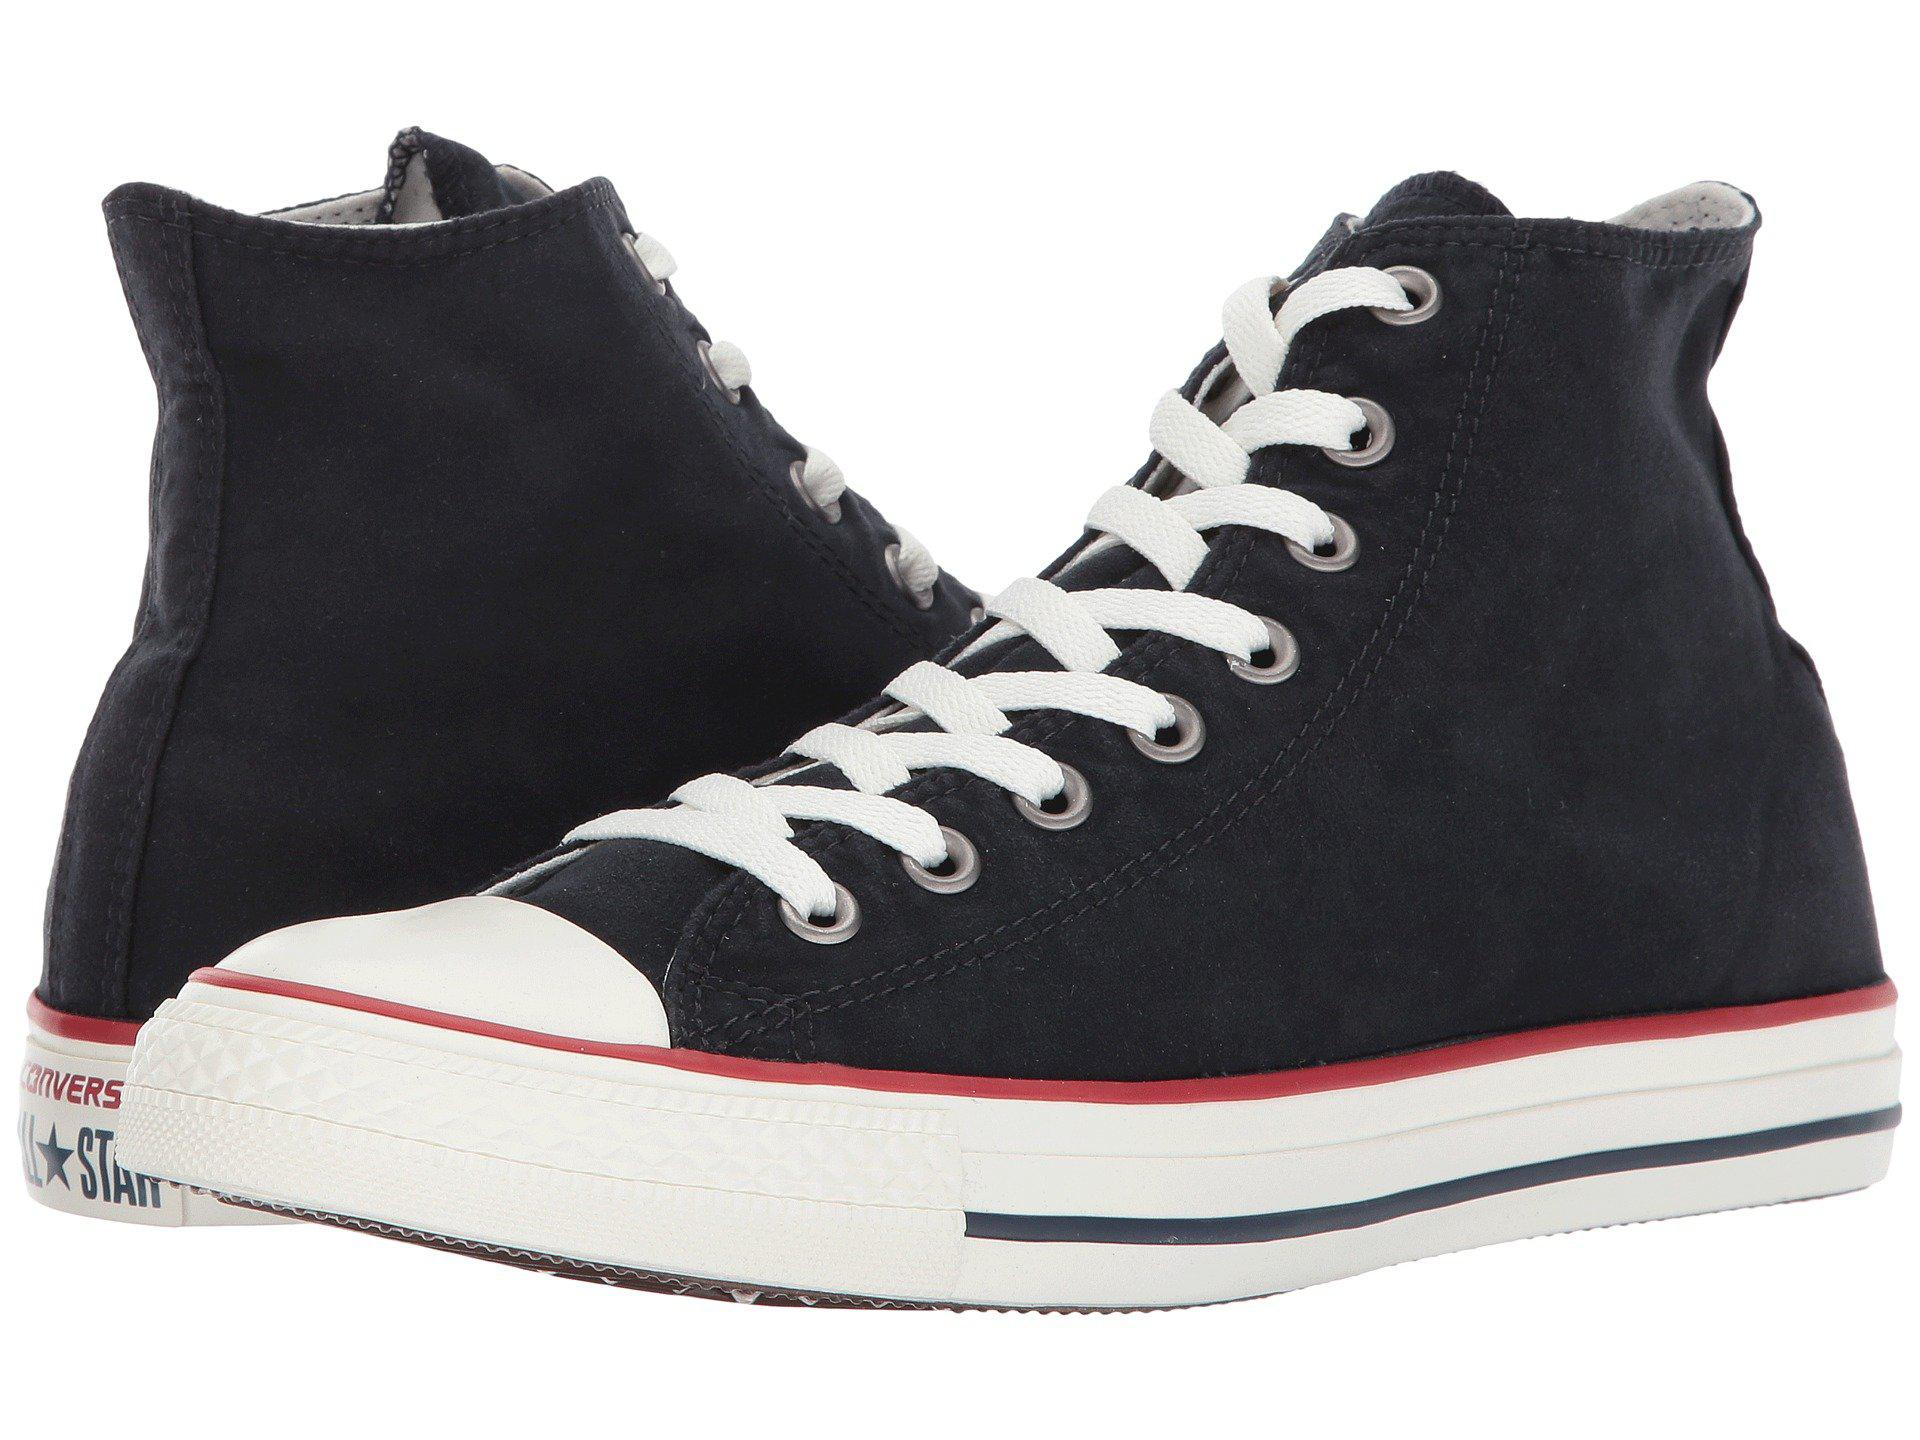 61937493f408 Lyst - Converse Chuck Taylor All Star Ombre Wash - Hi in Black